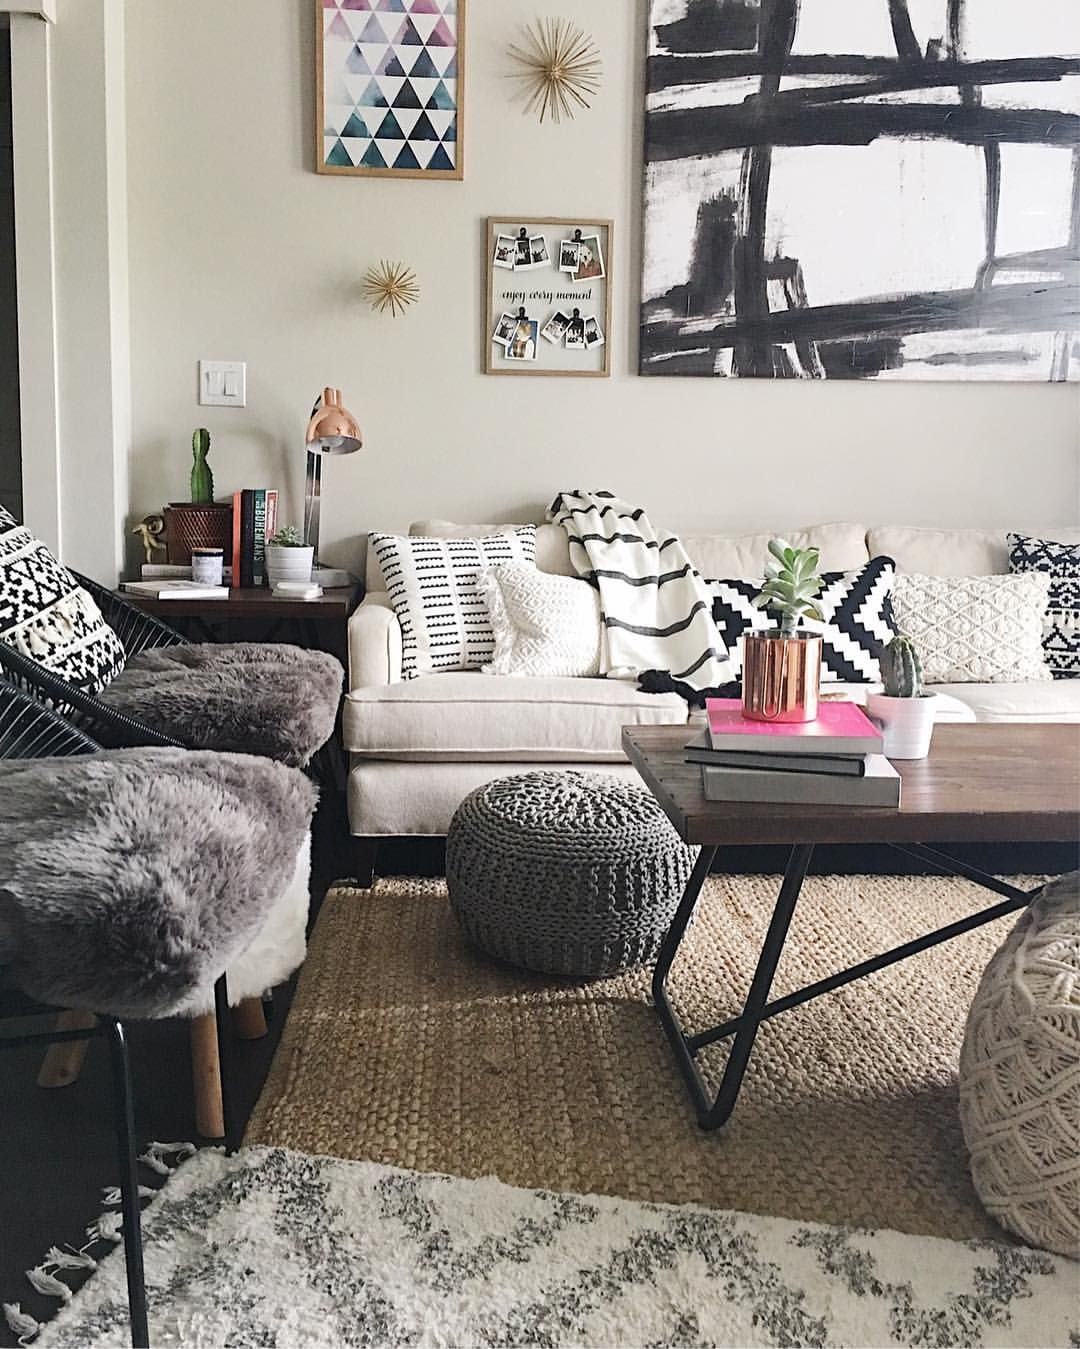 A Quick Peek Into My Modern Bohemian Living Room Neutral Decor With Pops Of Modern Bohemian Living Room Bohemian Living Room Decor Bohemian Style Living Room